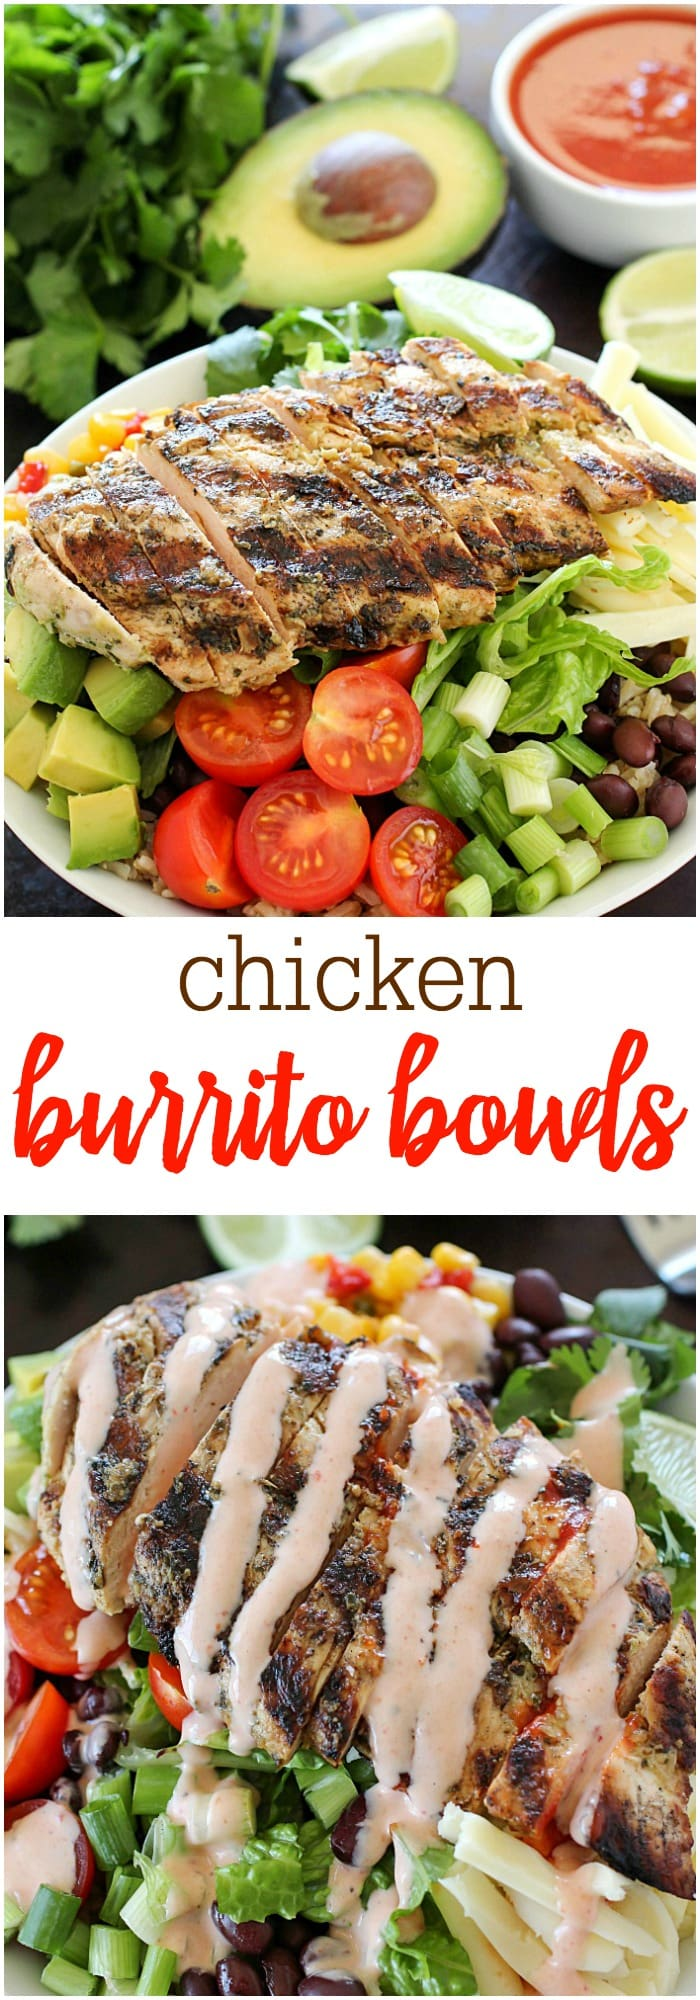 Ditch the tortilla and put everything we love about burritos into a yummy burrito bowl! This recipe is so easy and adaptable to what you like. The best part of this recipe is the tender chicken!